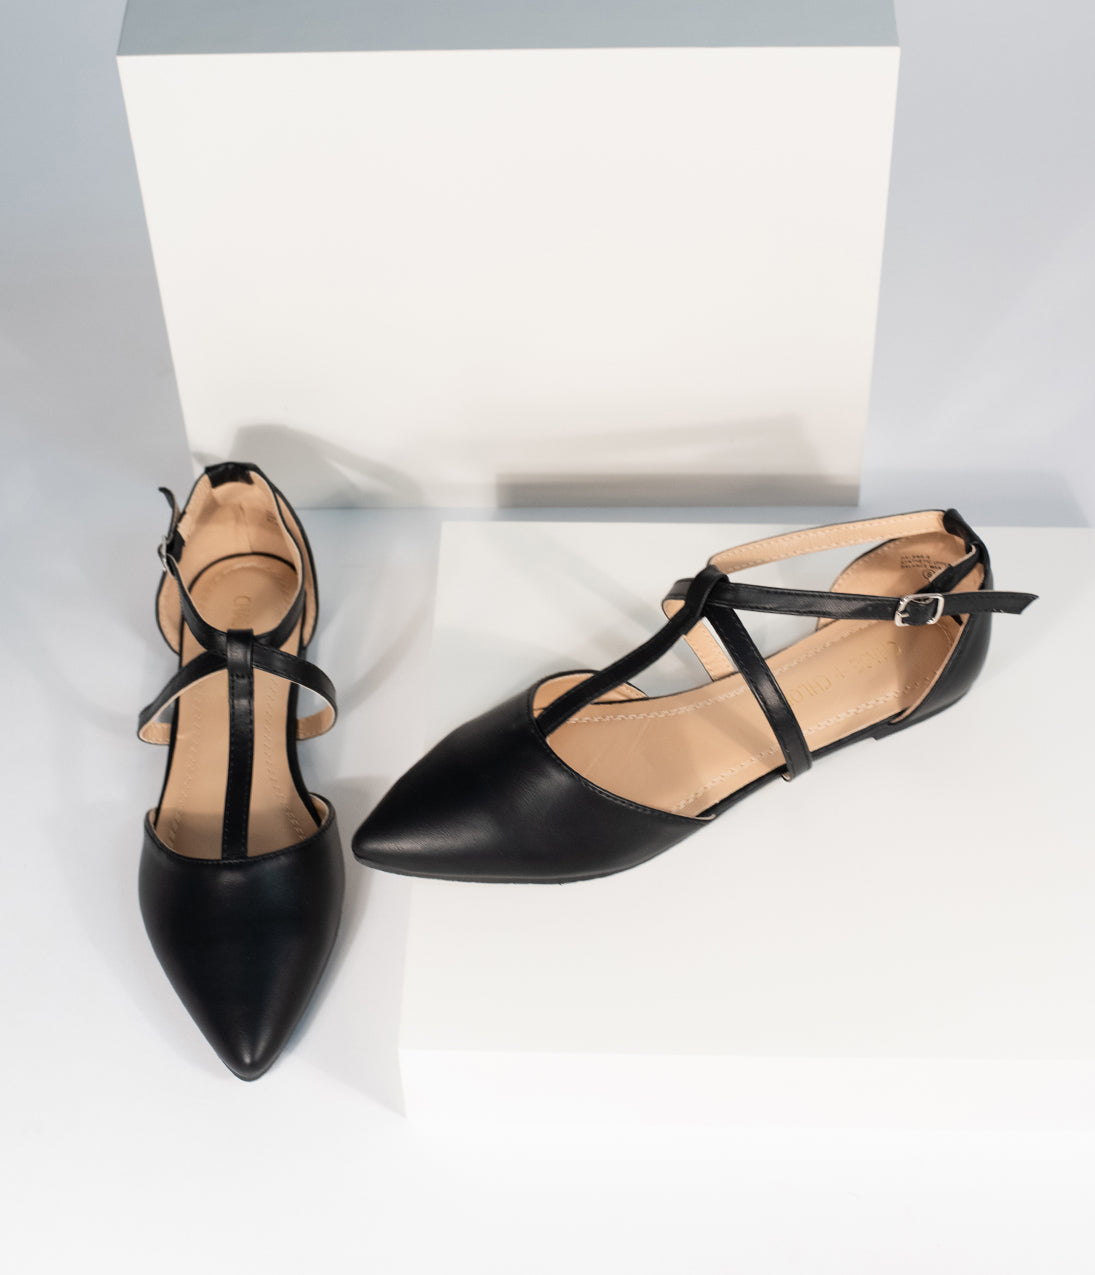 1950s Style Shoes | Heels, Flats, Saddle Shoes Black Leatherette Pointed Toe Dalena T-Strap Flat Sandals $32.00 AT vintagedancer.com